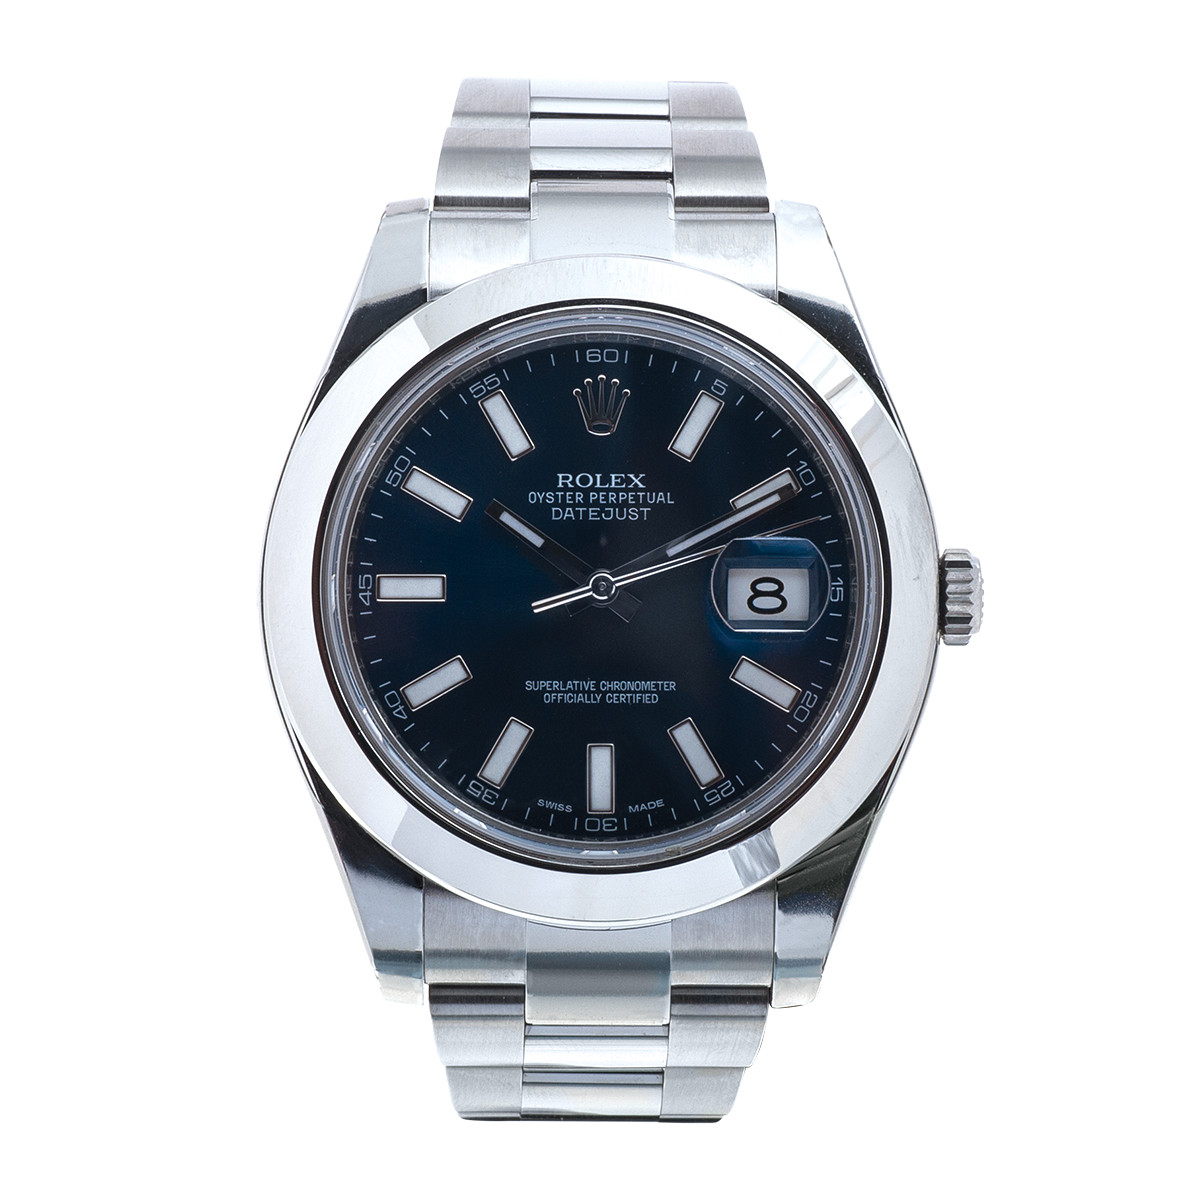 Preowned Rolex Datejust II